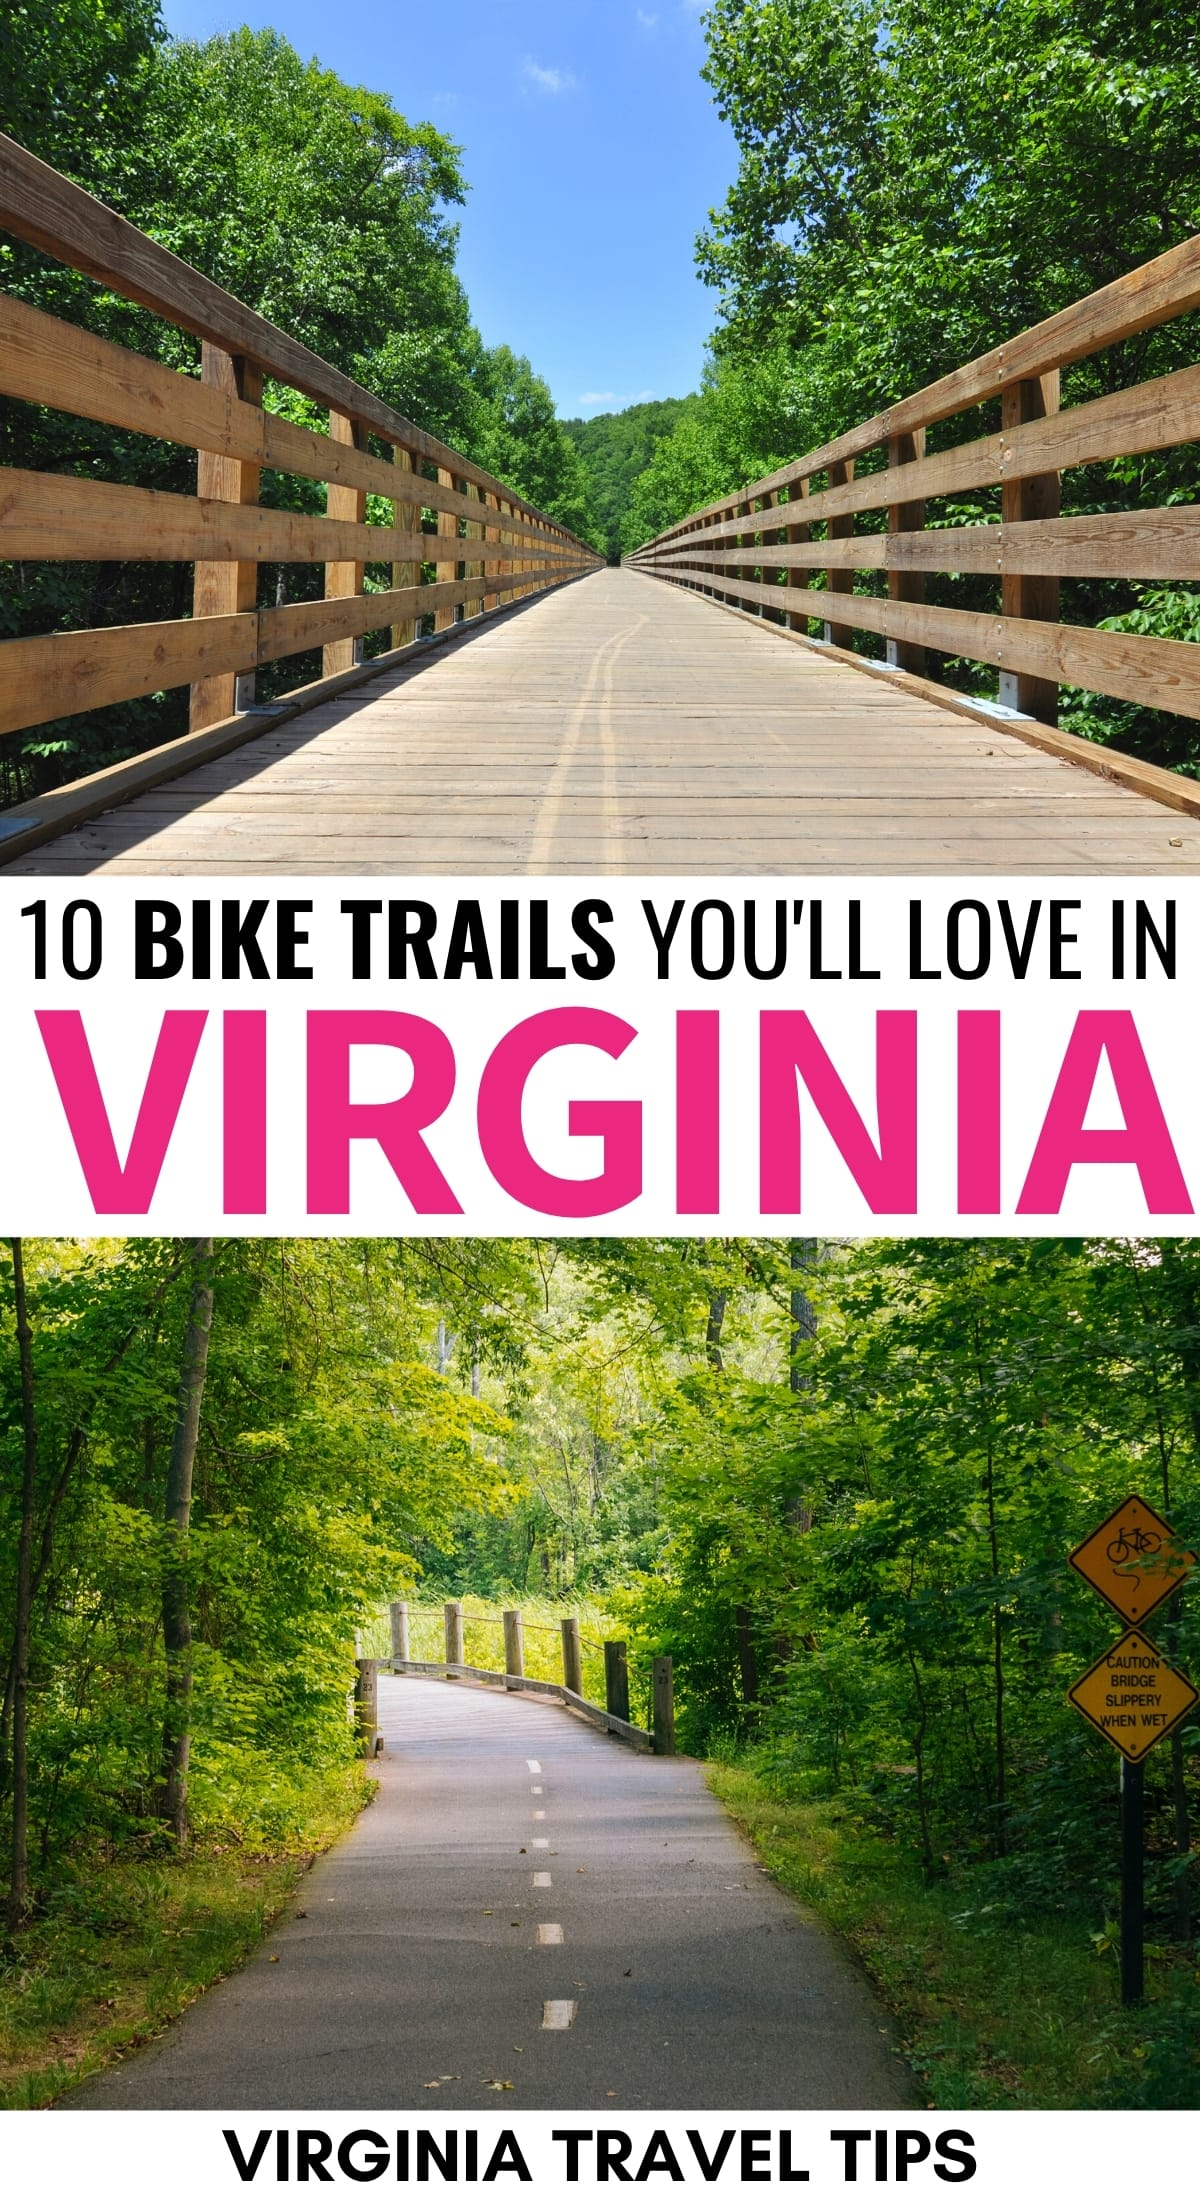 Are you looking for the best Virginia bike trails for an upcoming trip? This guide shows you some of the best bike trails in Virginia and where they are located. | Virginia biking | Virginia trails | Virginia nature | Virginia creeper trail | Mount Vernon Trail | Best of Virginia | Virginia is for lovers | Things to do in Virginia